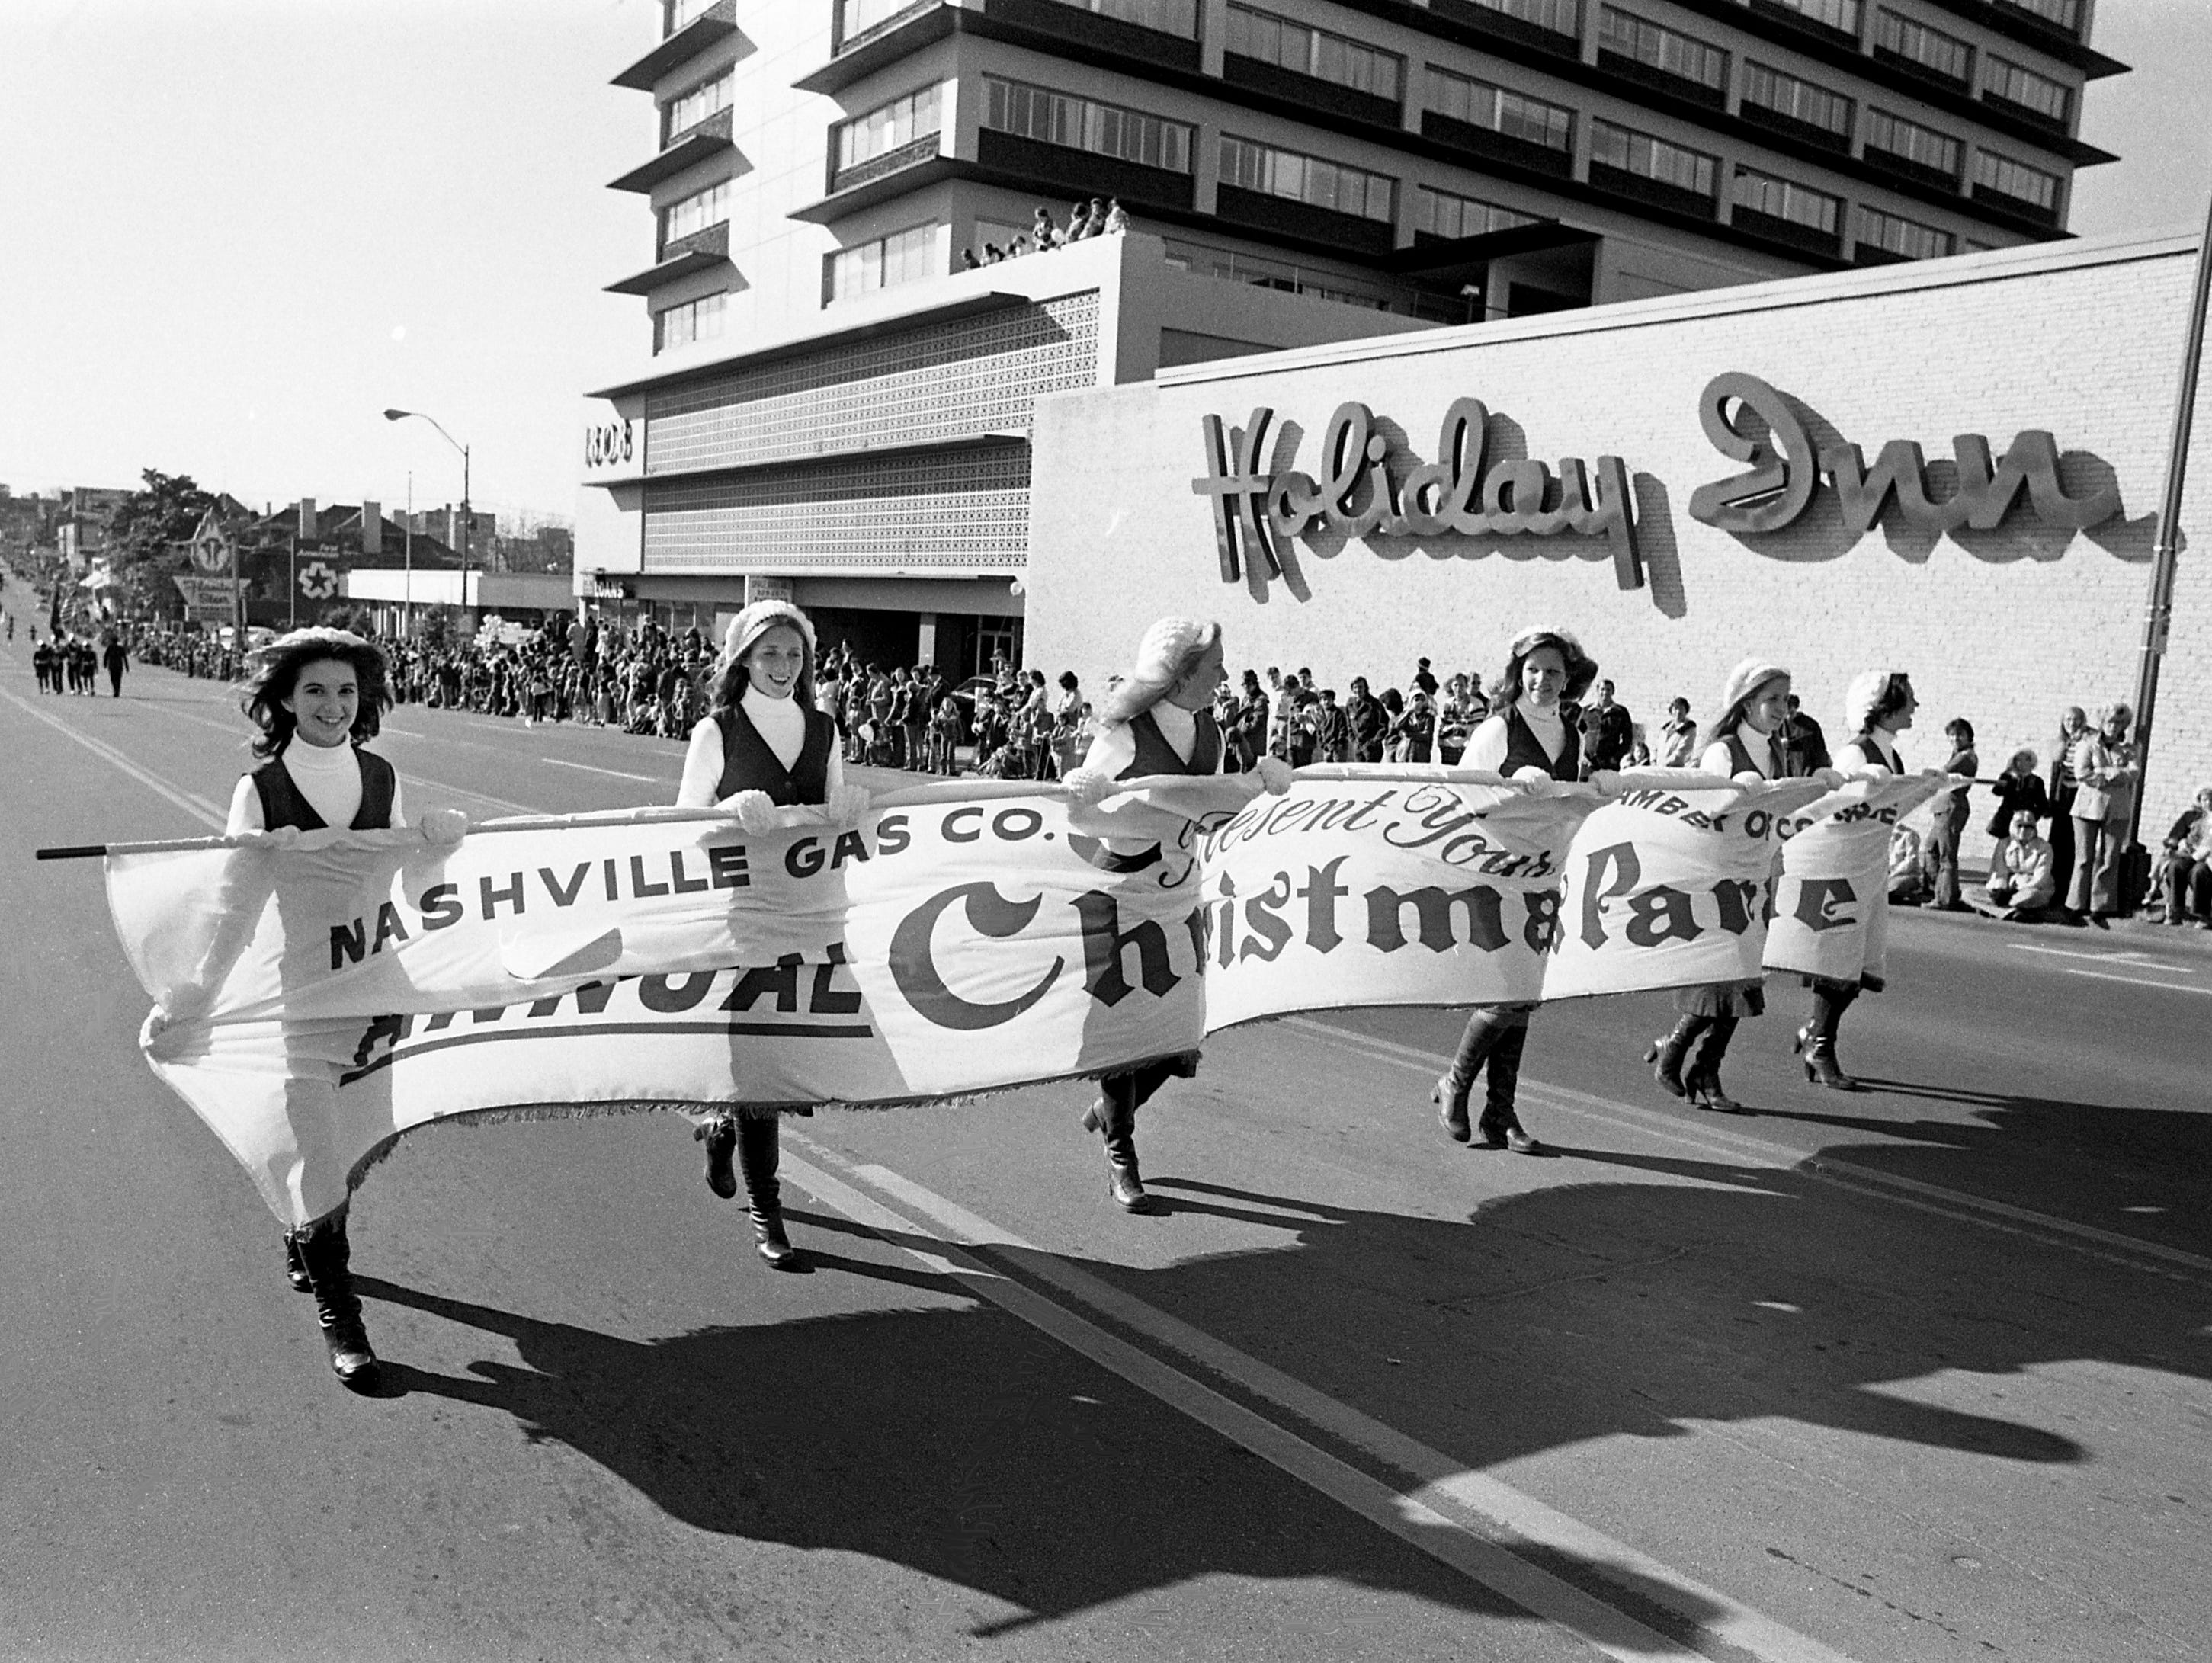 Take a look back at Nashville history with photos of Christmastime around the city in 1976.